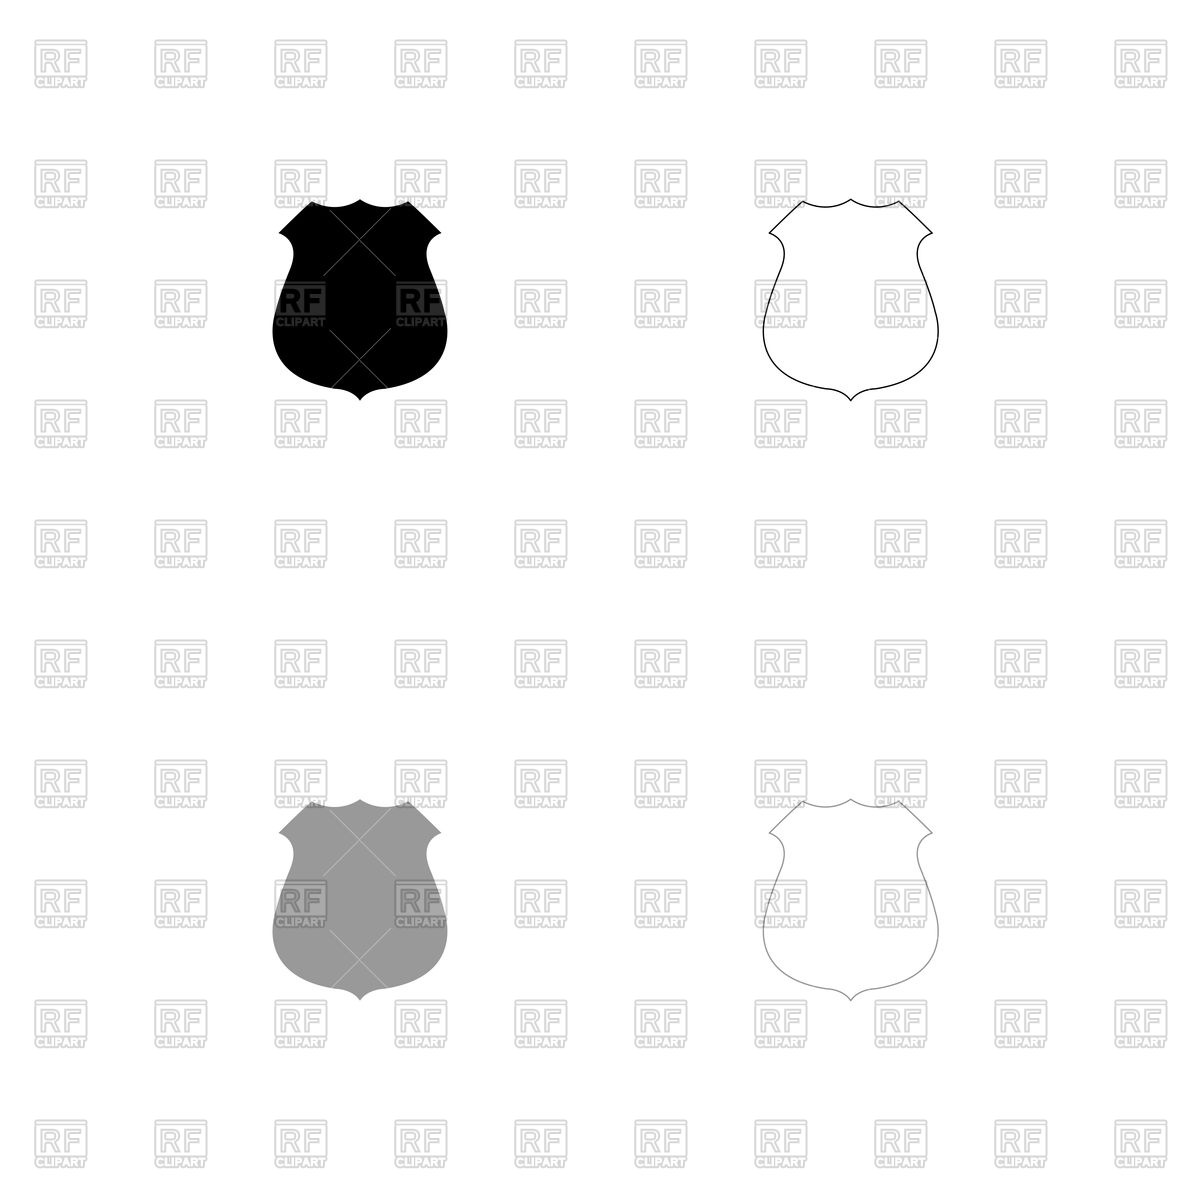 1200x1200 Blank Badge Cliparts 2566770. Police Badge Sheriff Badge Gallery